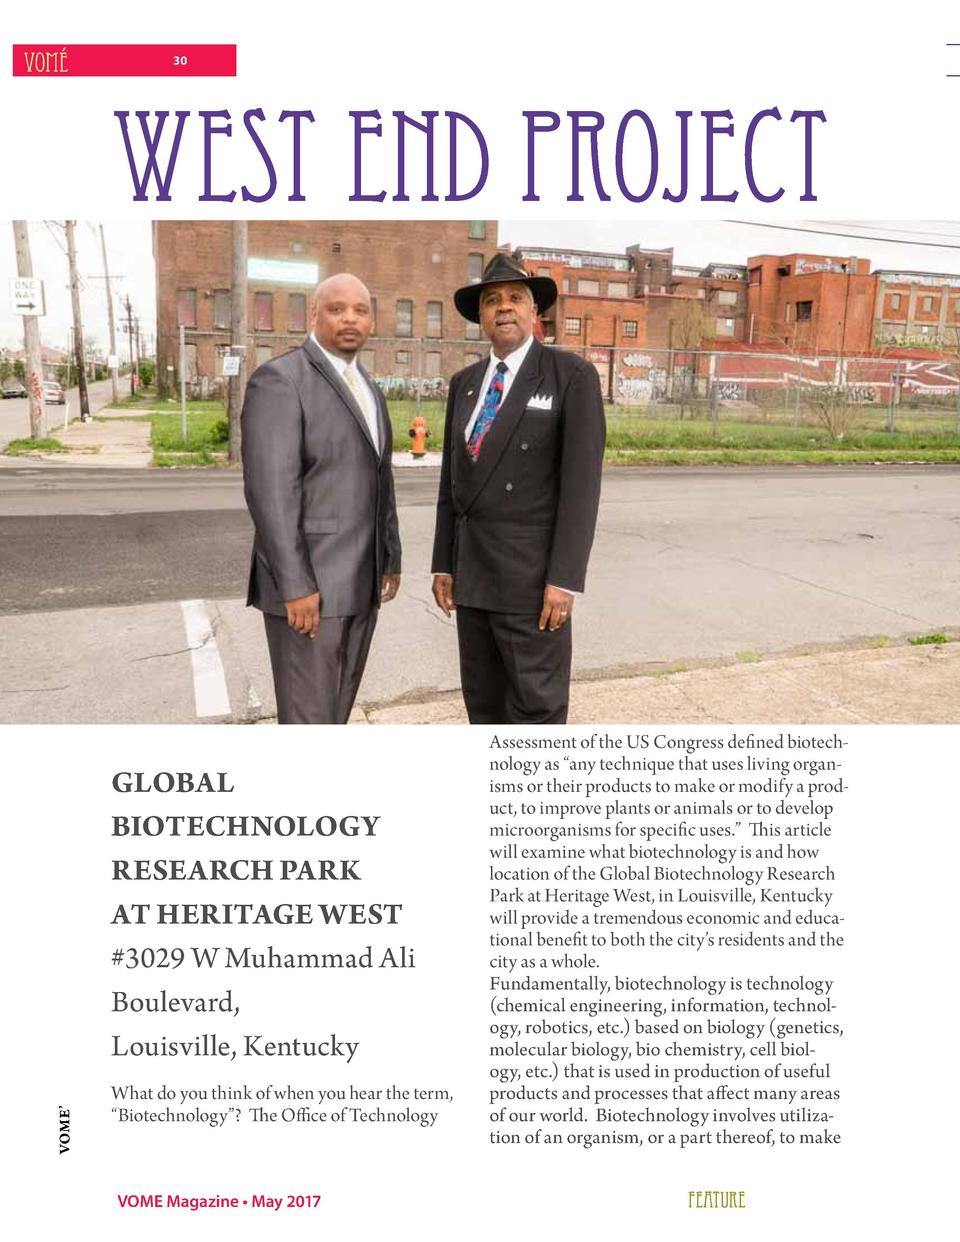 VOM    30  WEST END PROJECT  VOME     GLOBAL BIOTECHNOLOGY RESEARCH PARK AT HERITAGE WEST  3029 W Muhammad Ali Boulevard, ...